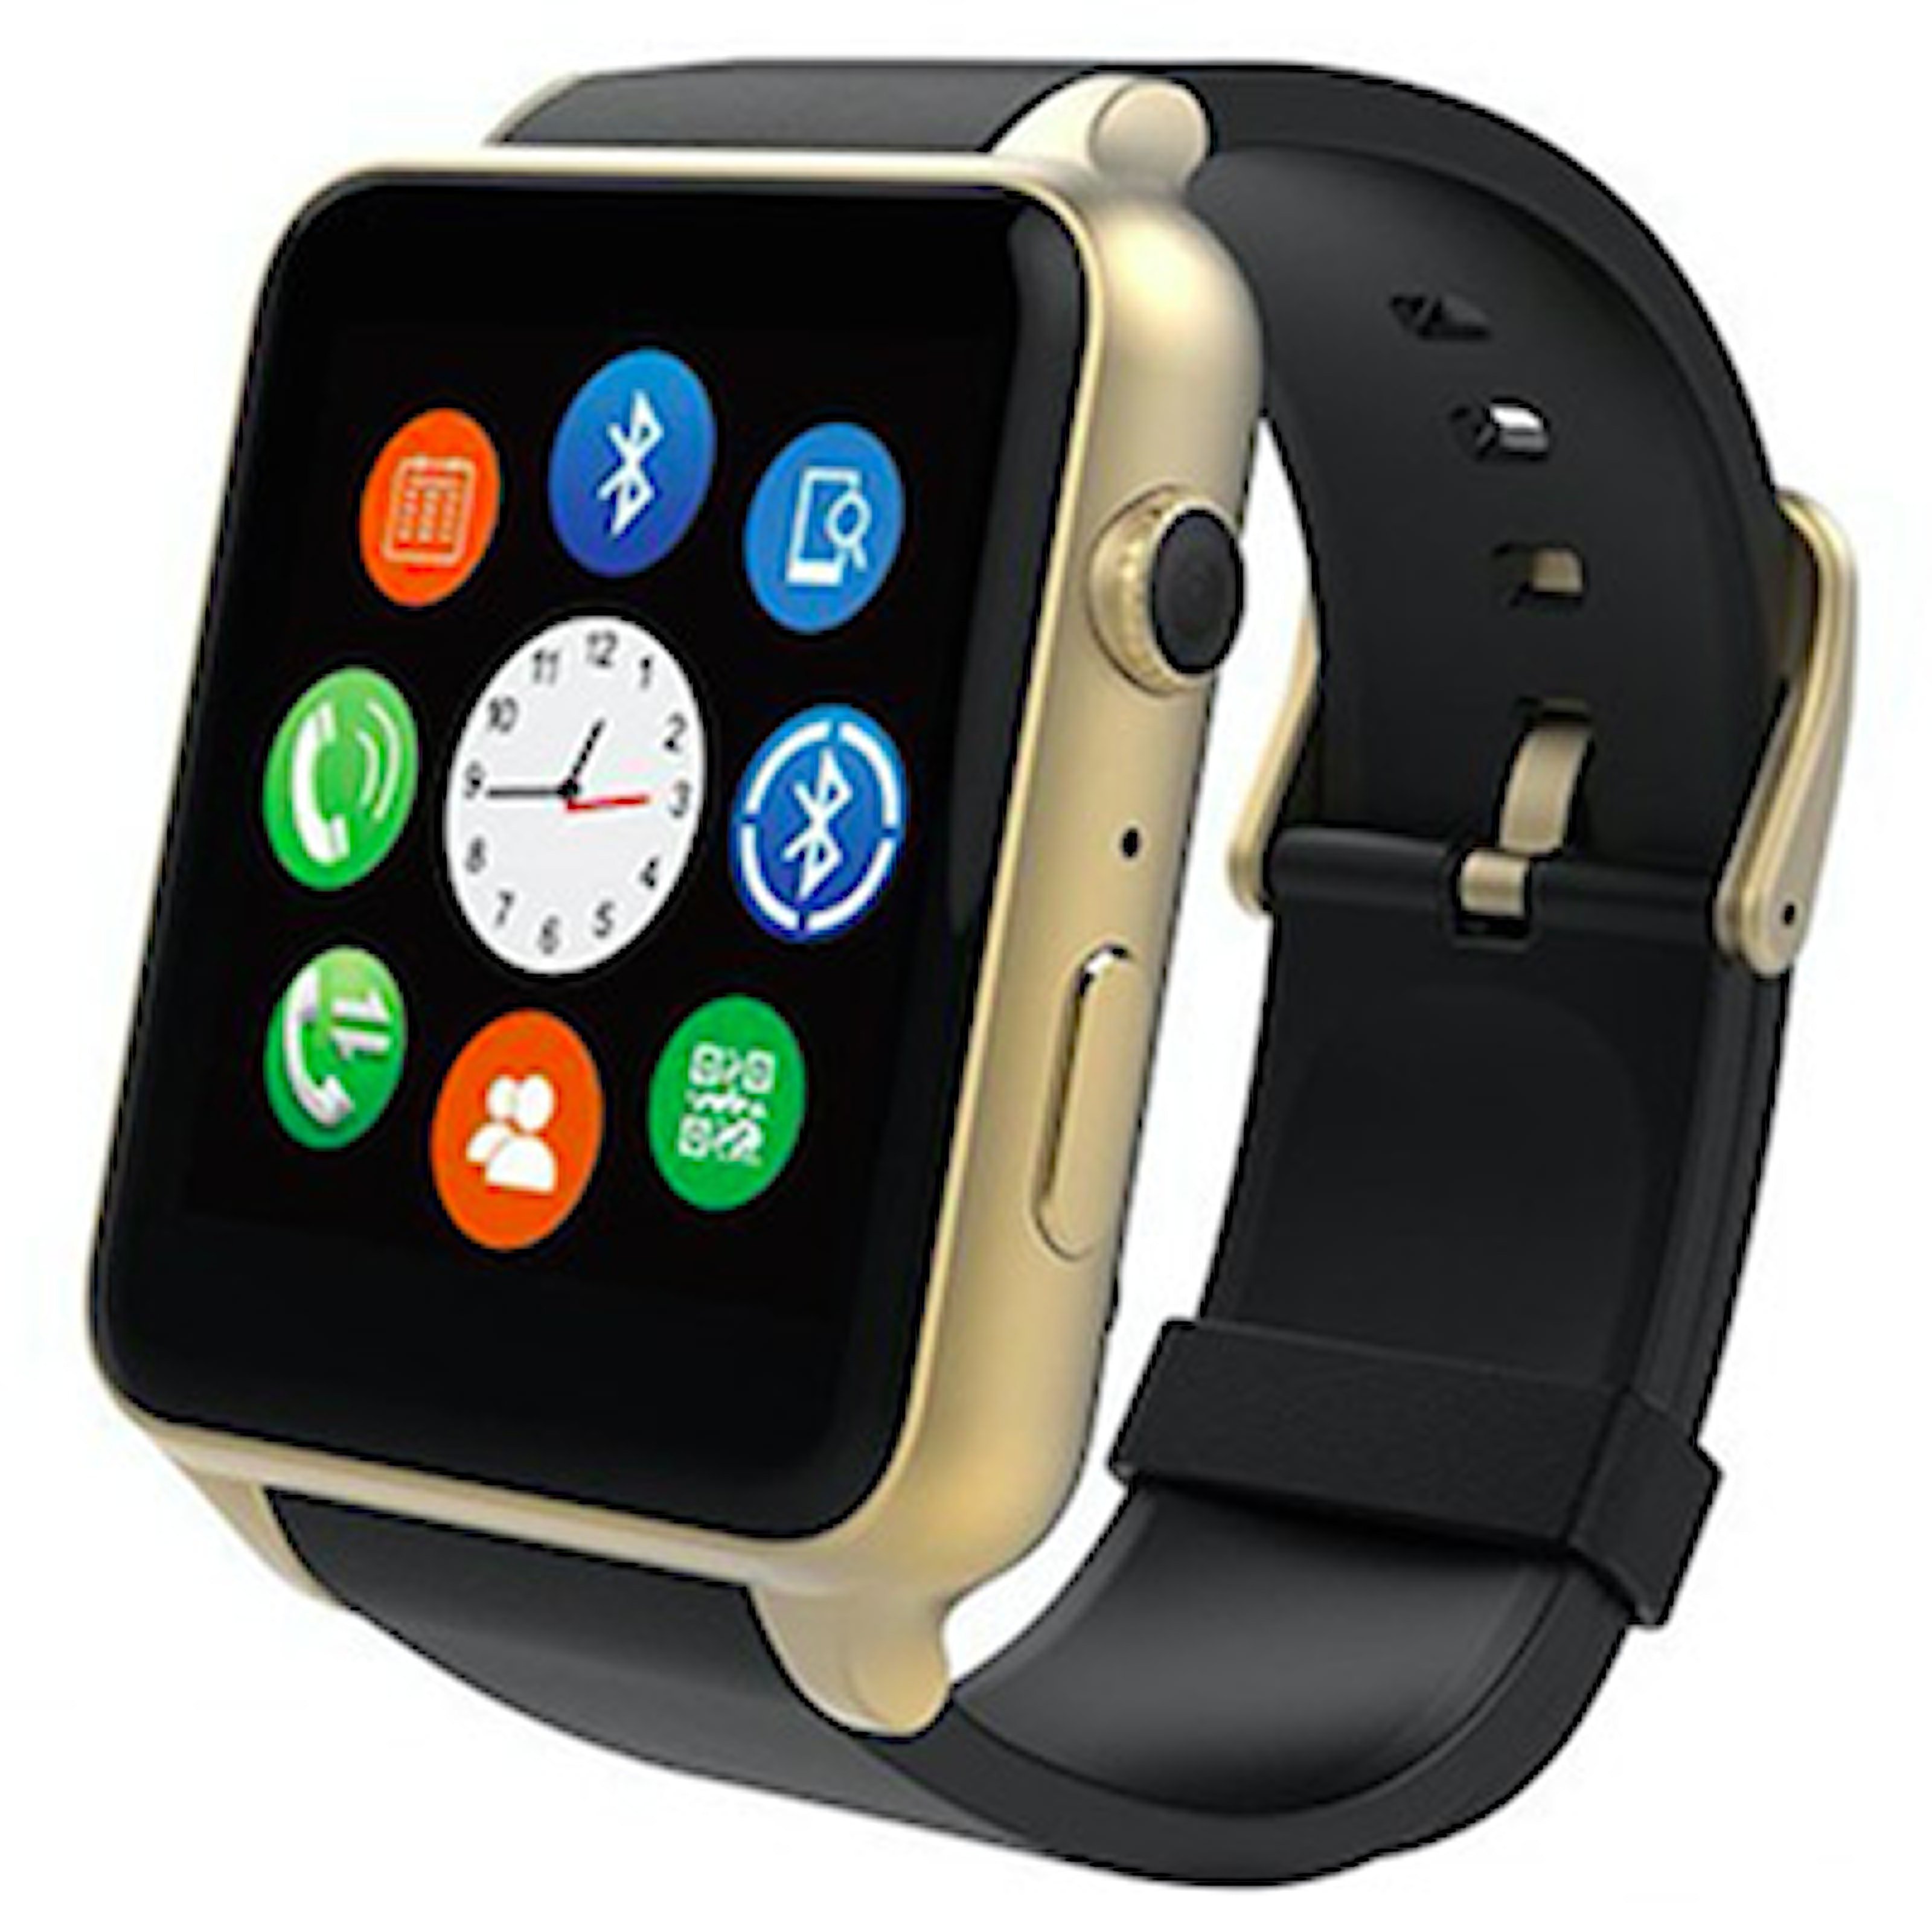 Svart/Guld, Multifunctional Bluetooth Smart Watch and Fitness Tracker, Smartwatch, ,